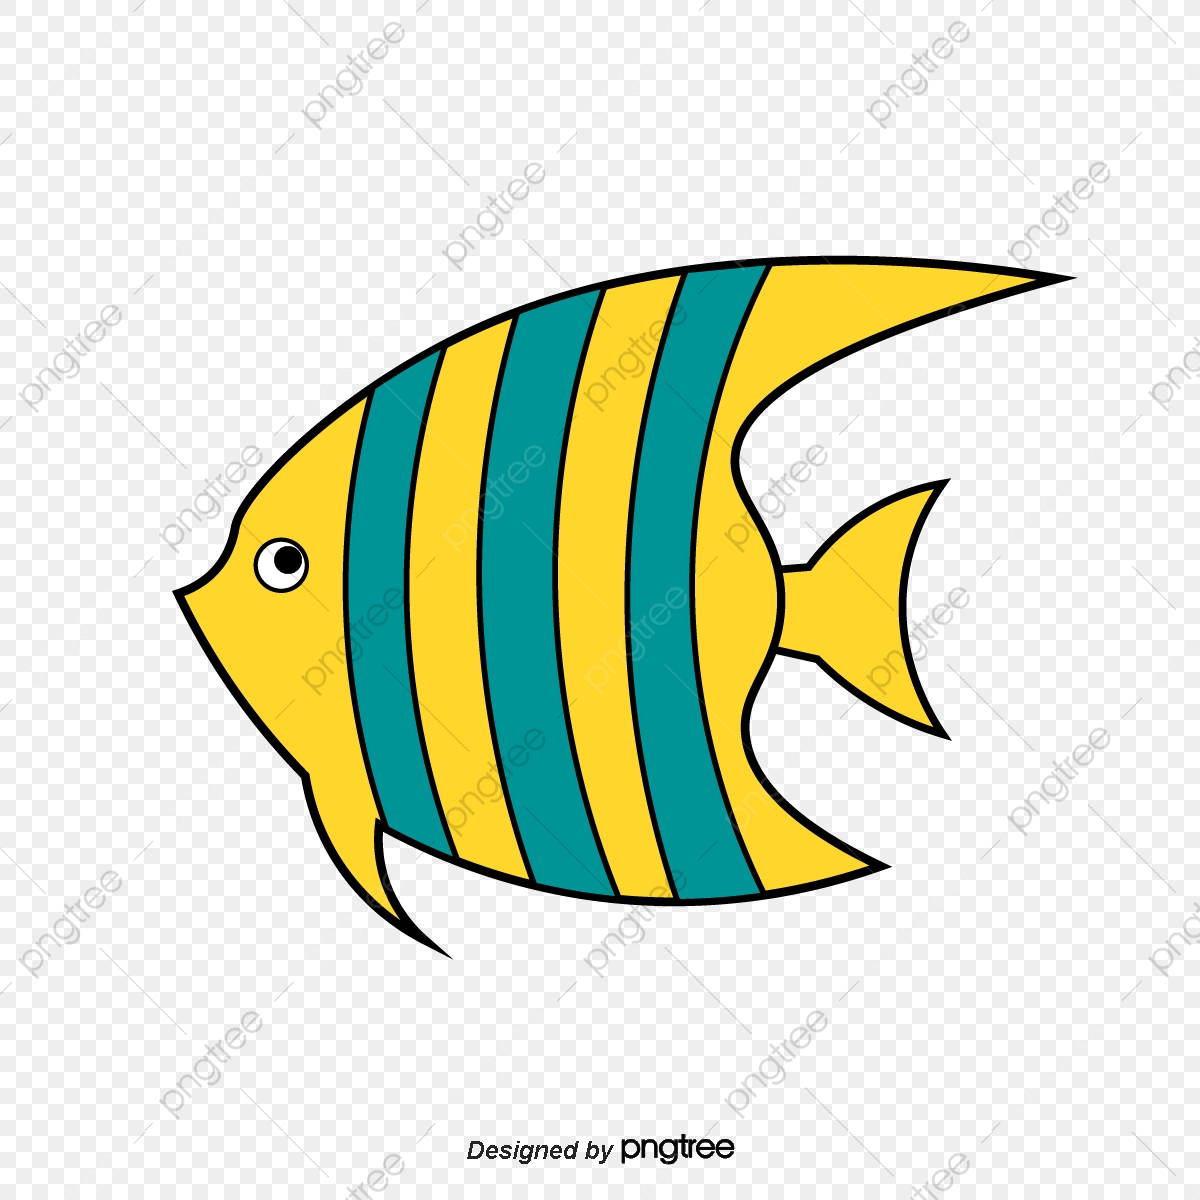 Yellow Cartoon Cute Tropical Fish Cartoon Style Cartoon Fish Lovely Png And Vector With Transparent Background For Free Download